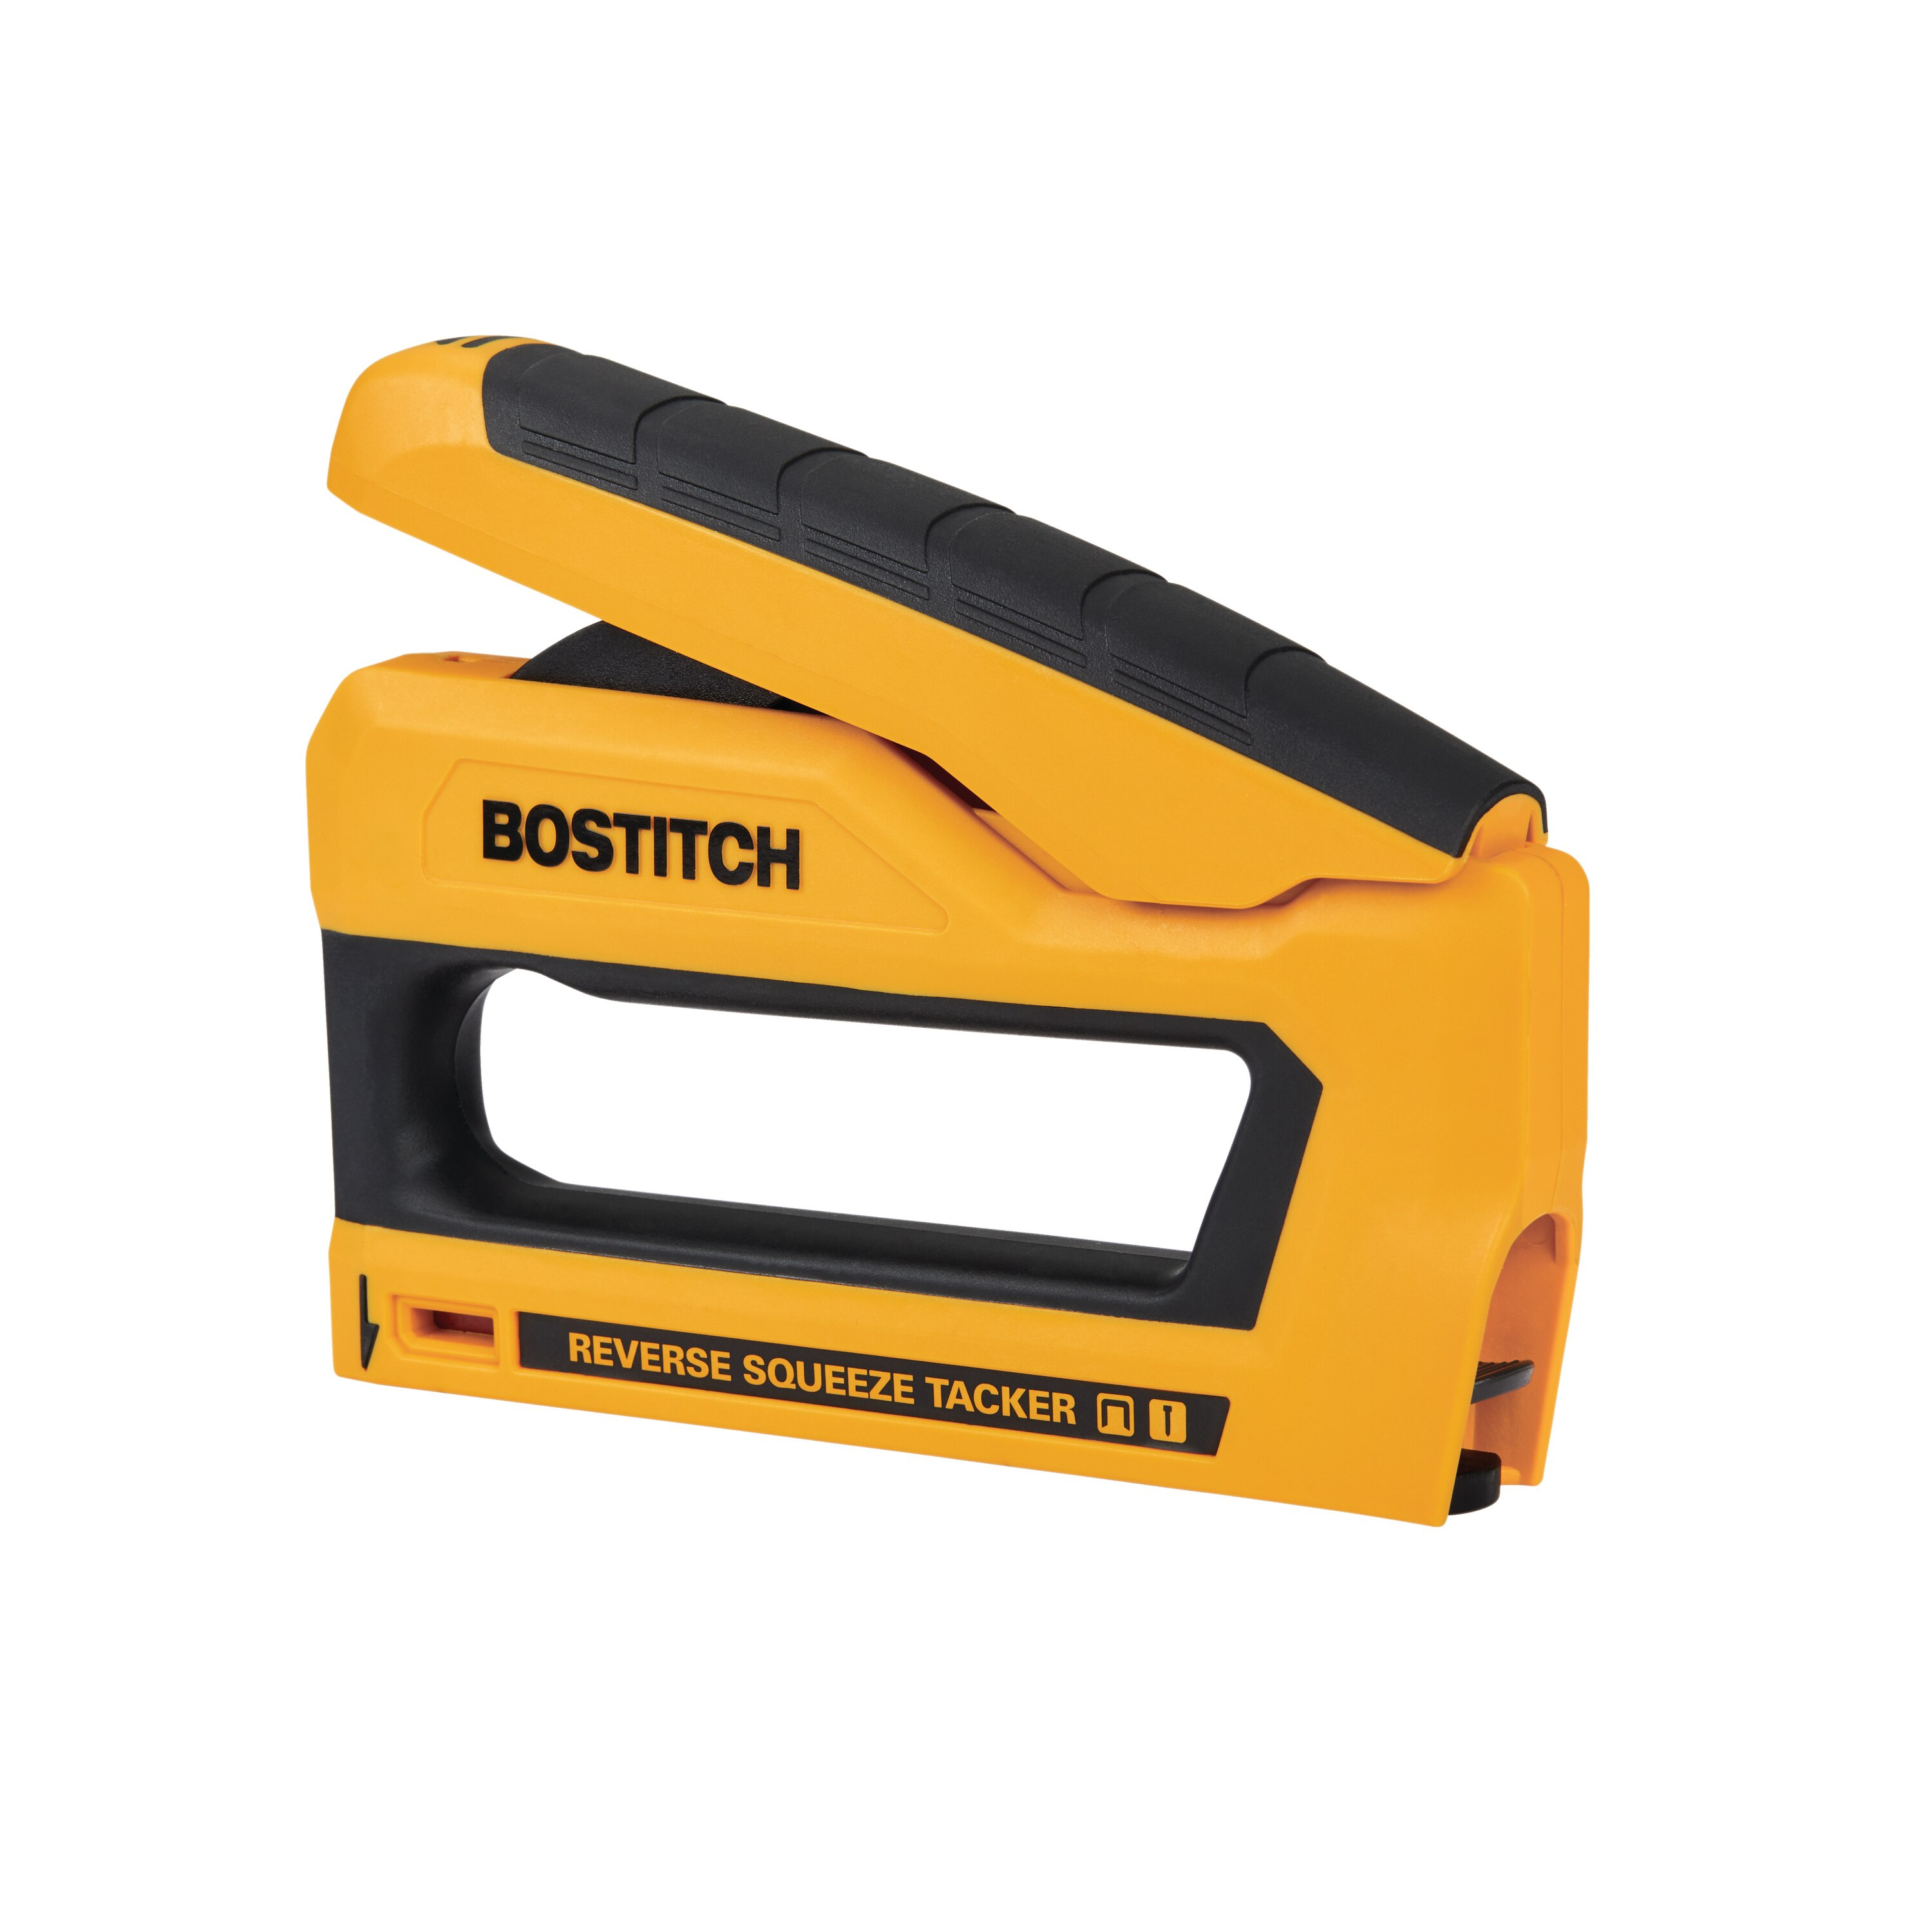 Bostitch - Reverse Squeeze Stapler - BTHT80278